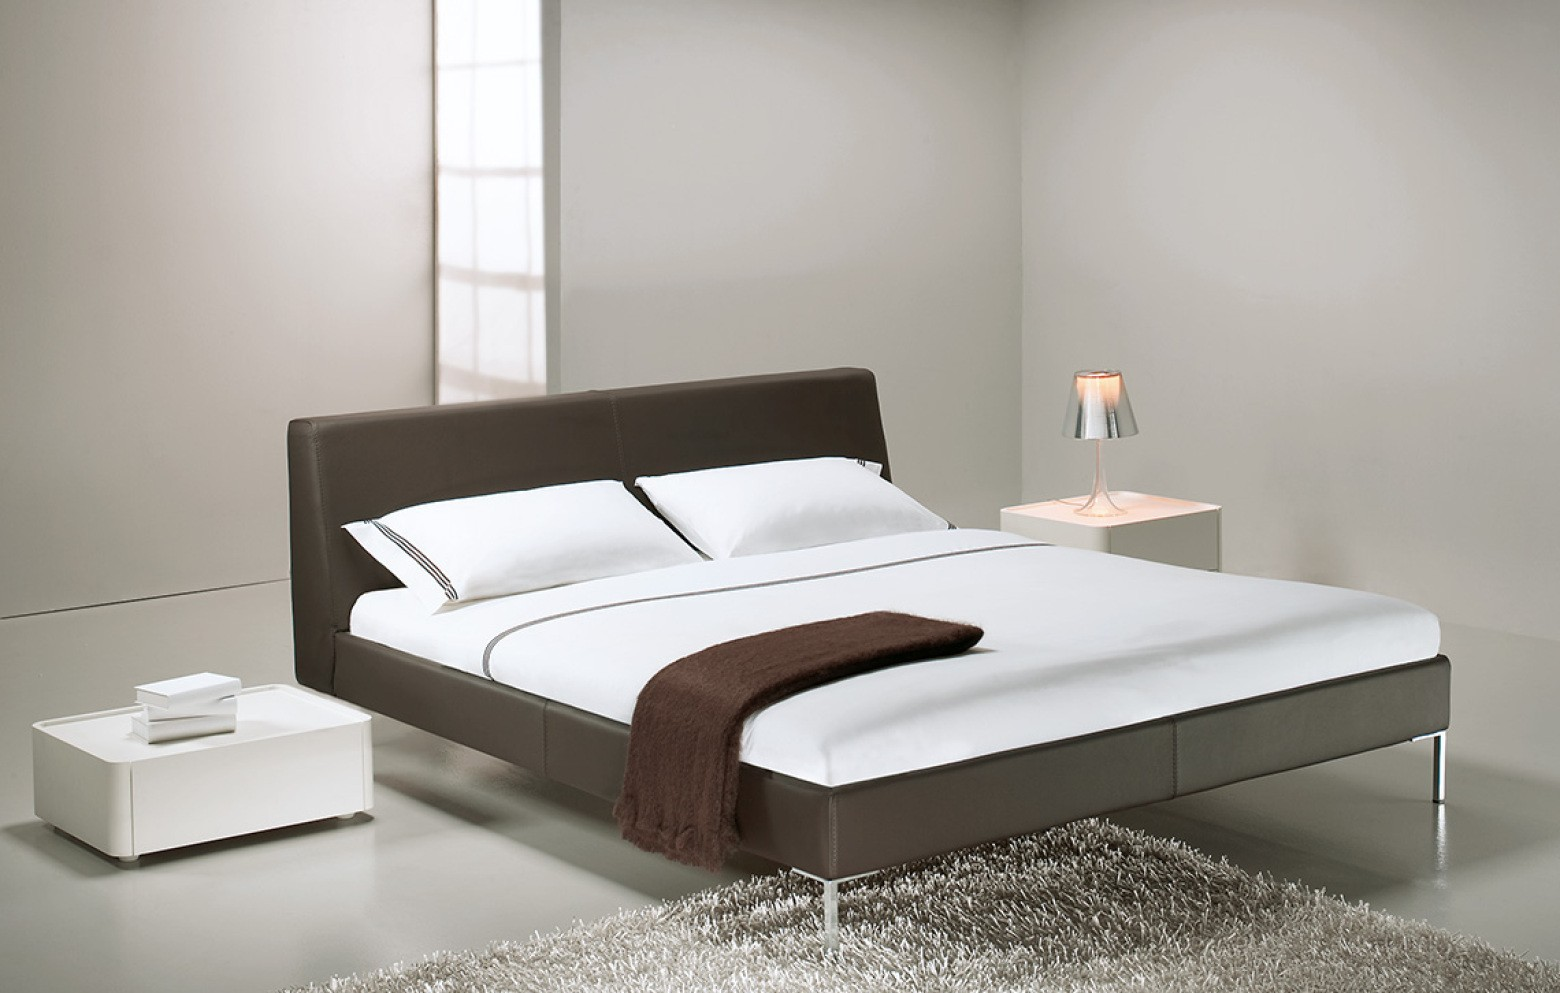 designerbett luca jetzt g nstig bei who 39 s perfect kaufen. Black Bedroom Furniture Sets. Home Design Ideas